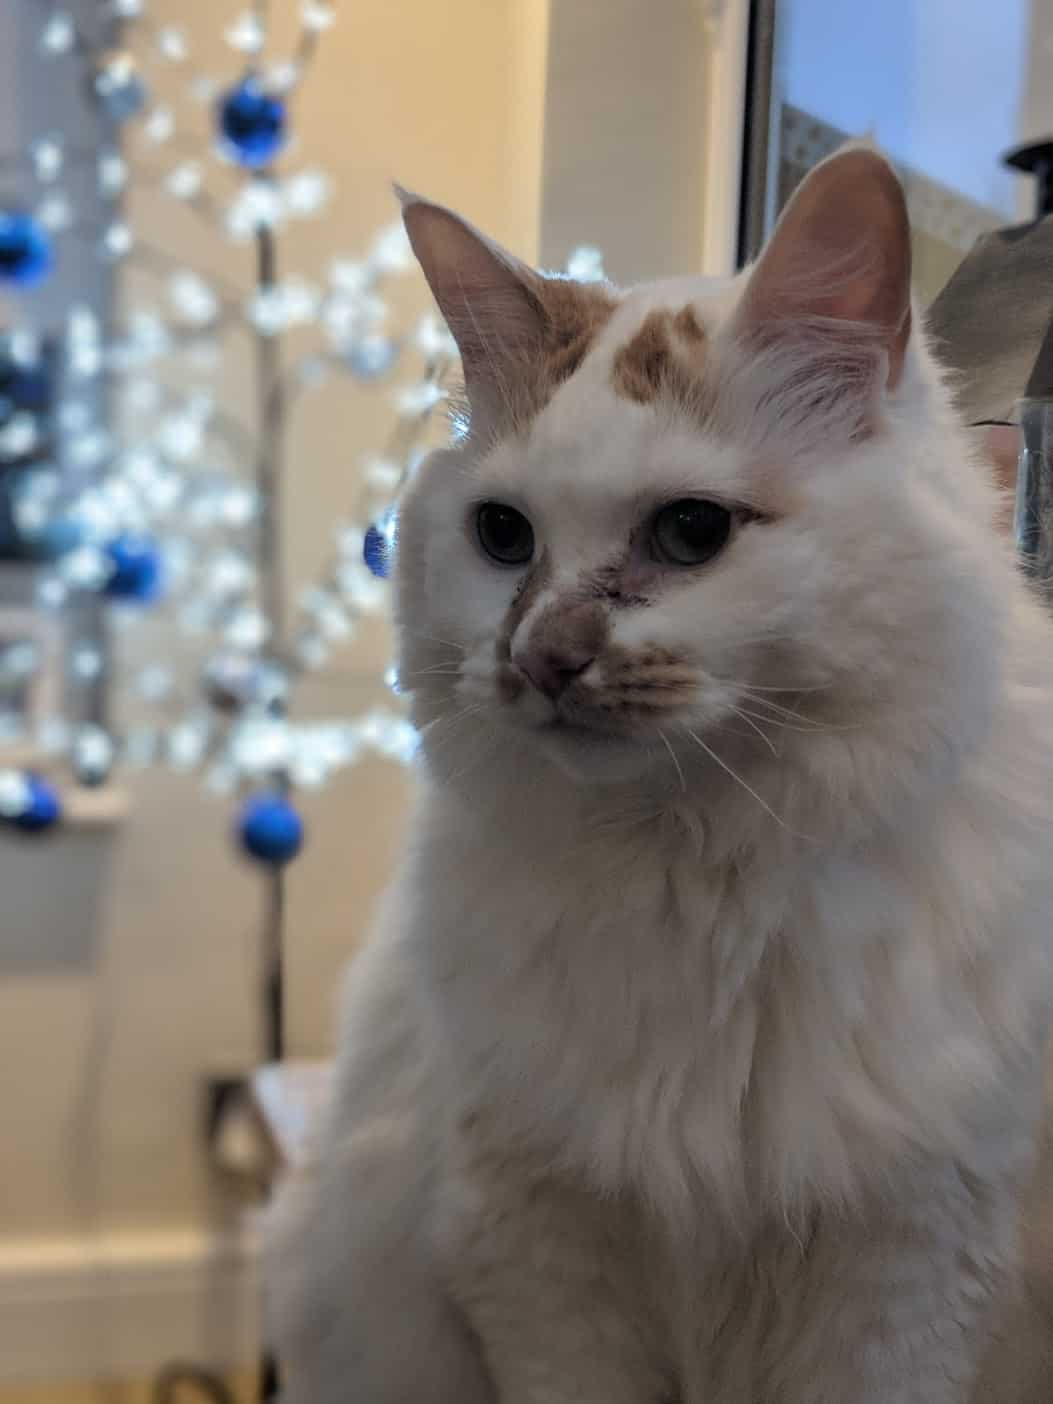 A white cat called Belle, a name inspired by the Disney Princess